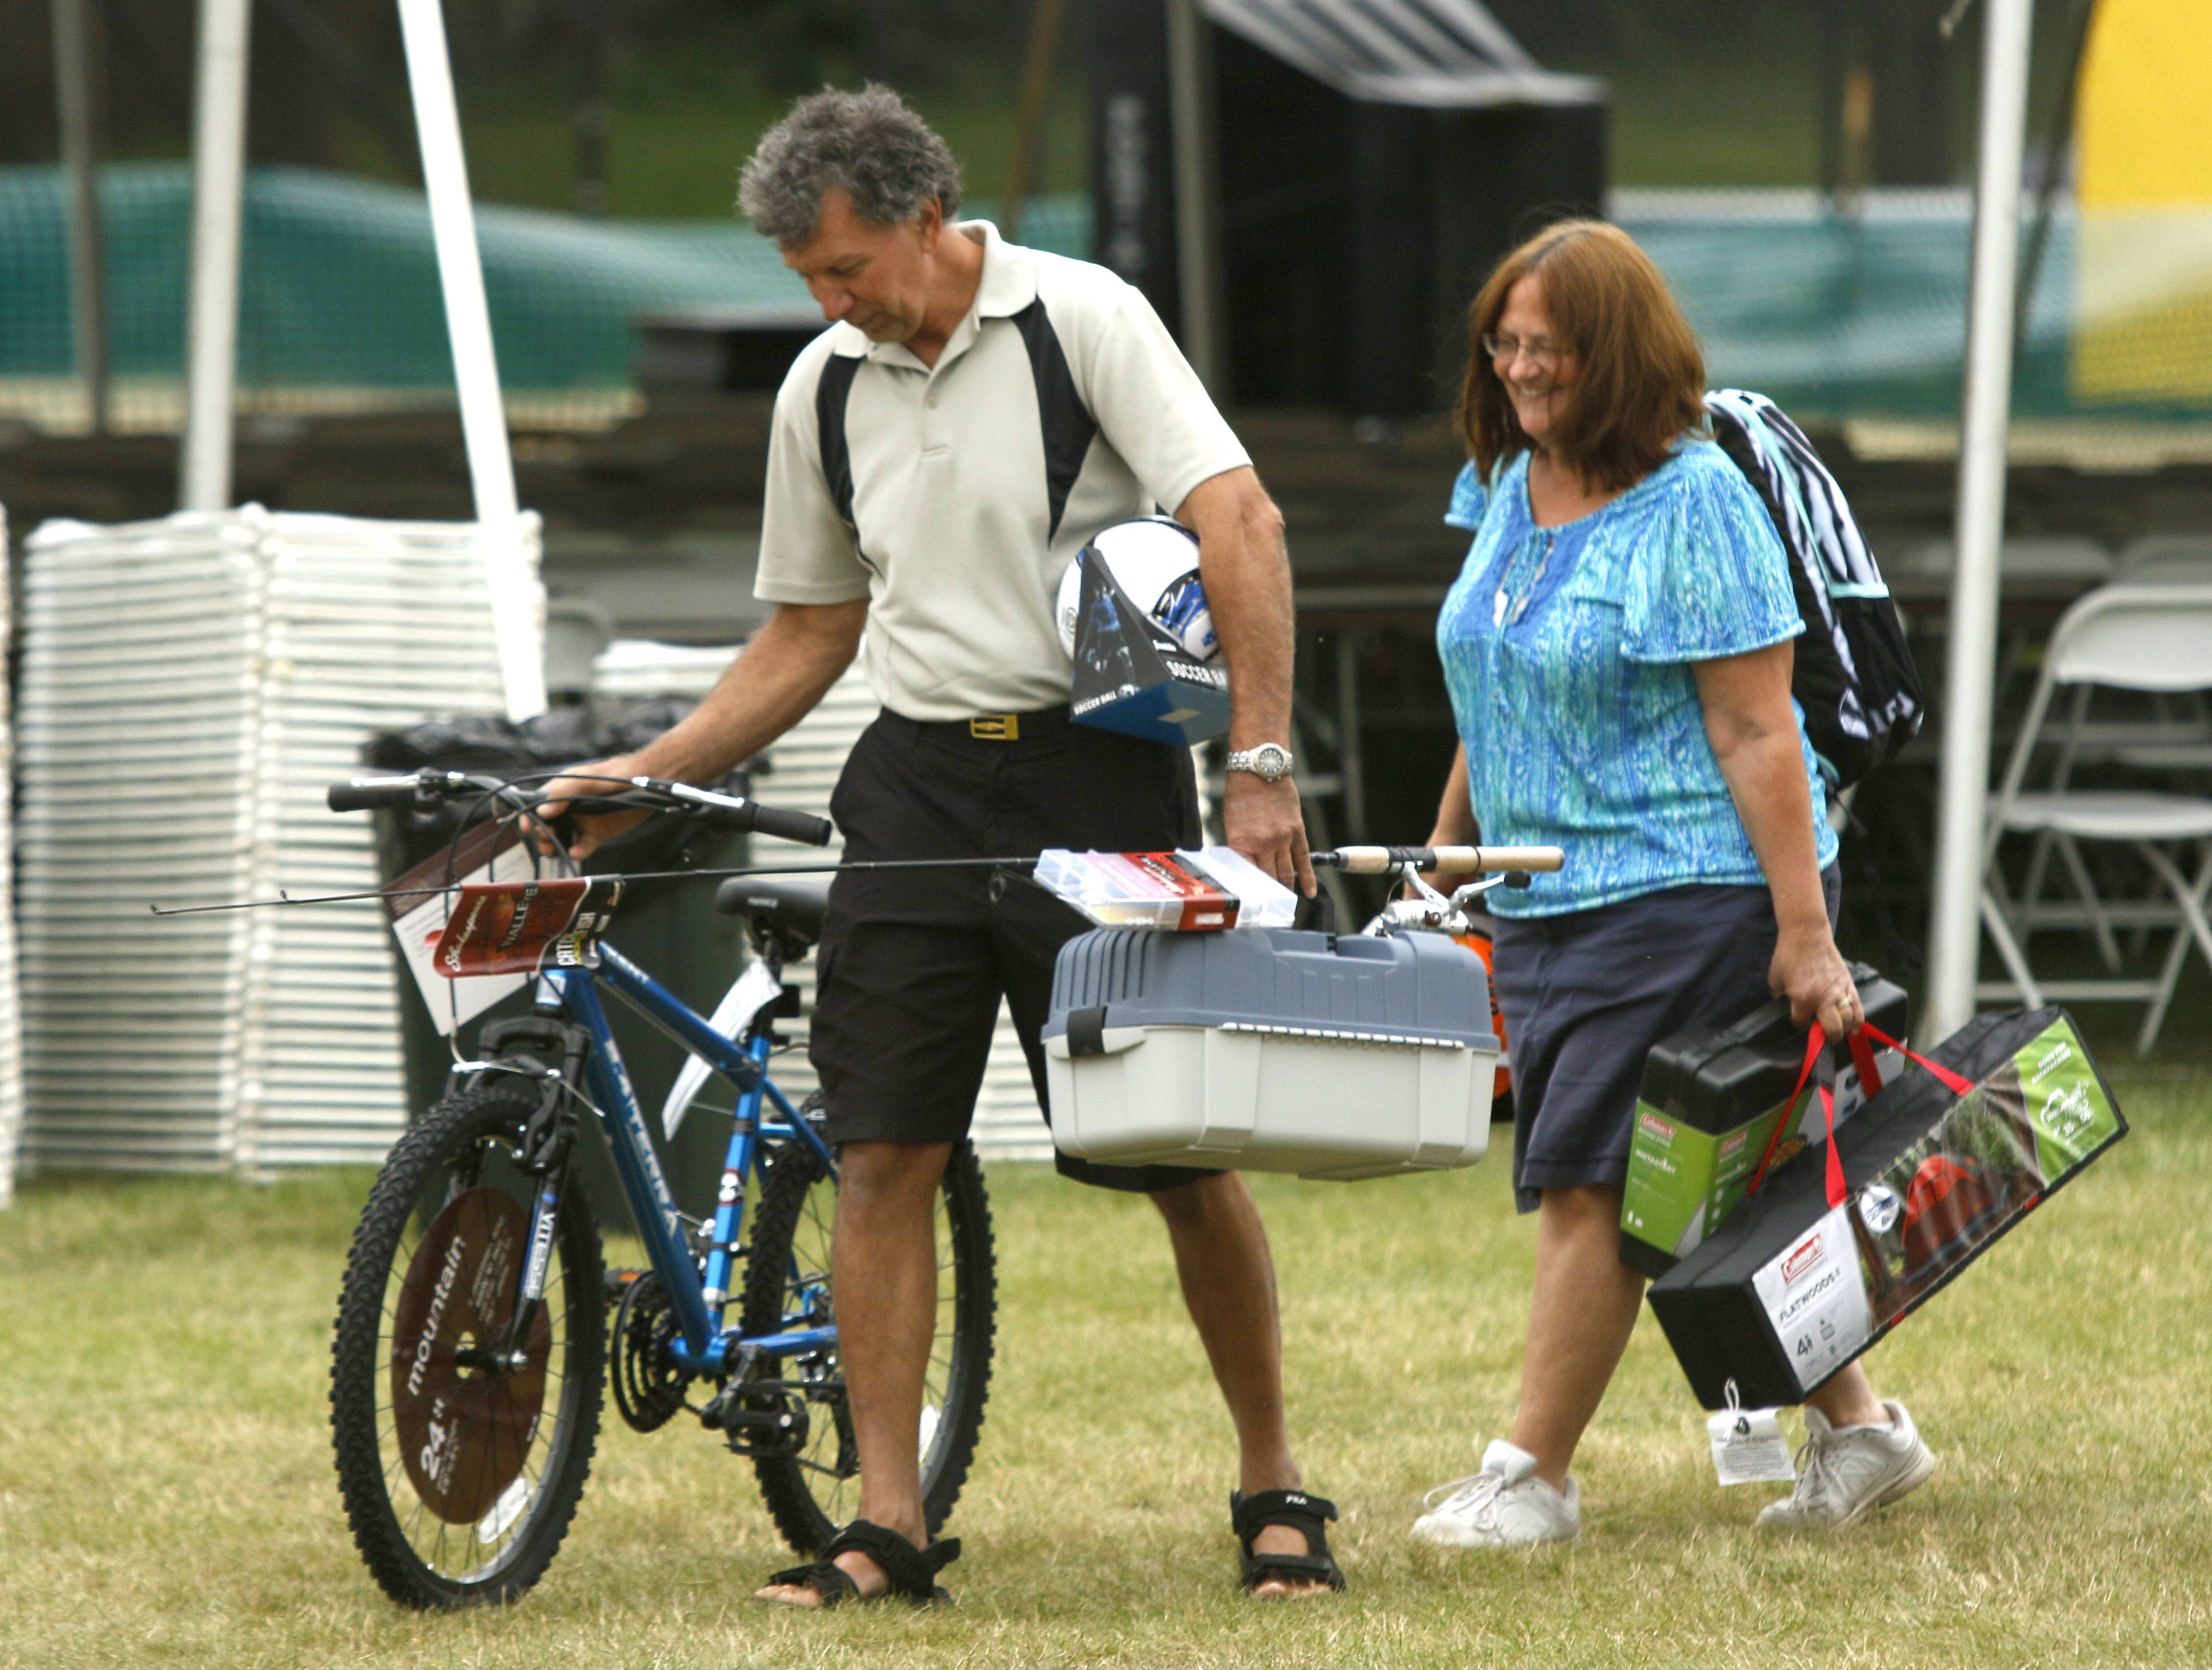 Mike Heppner and his wife Nancy won several prizes Sunday, including the fishing contest award raffled by the Lions Club, during the last day of Itasca Fest.